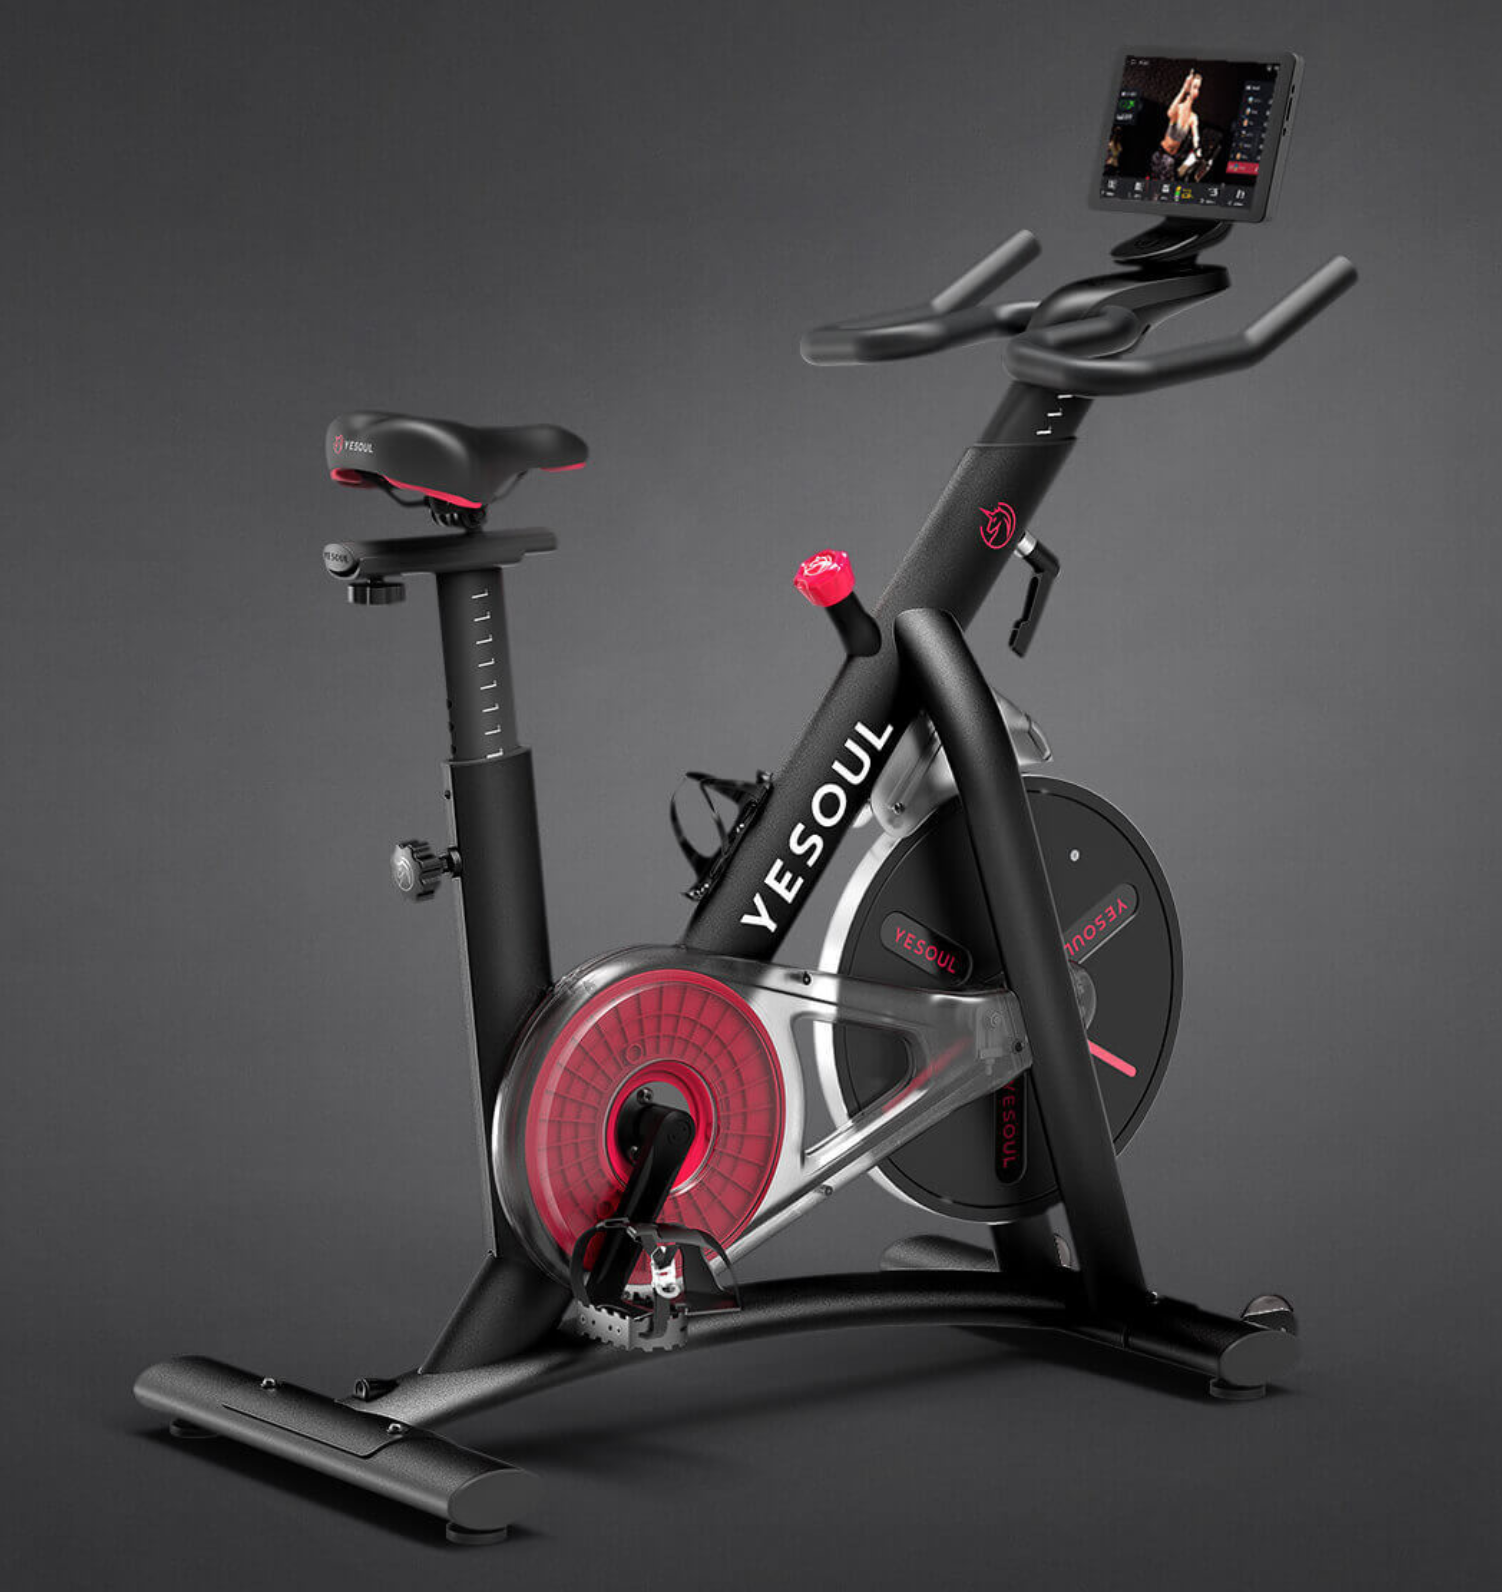 A new spinning bike from Xiaomi called Yesoul